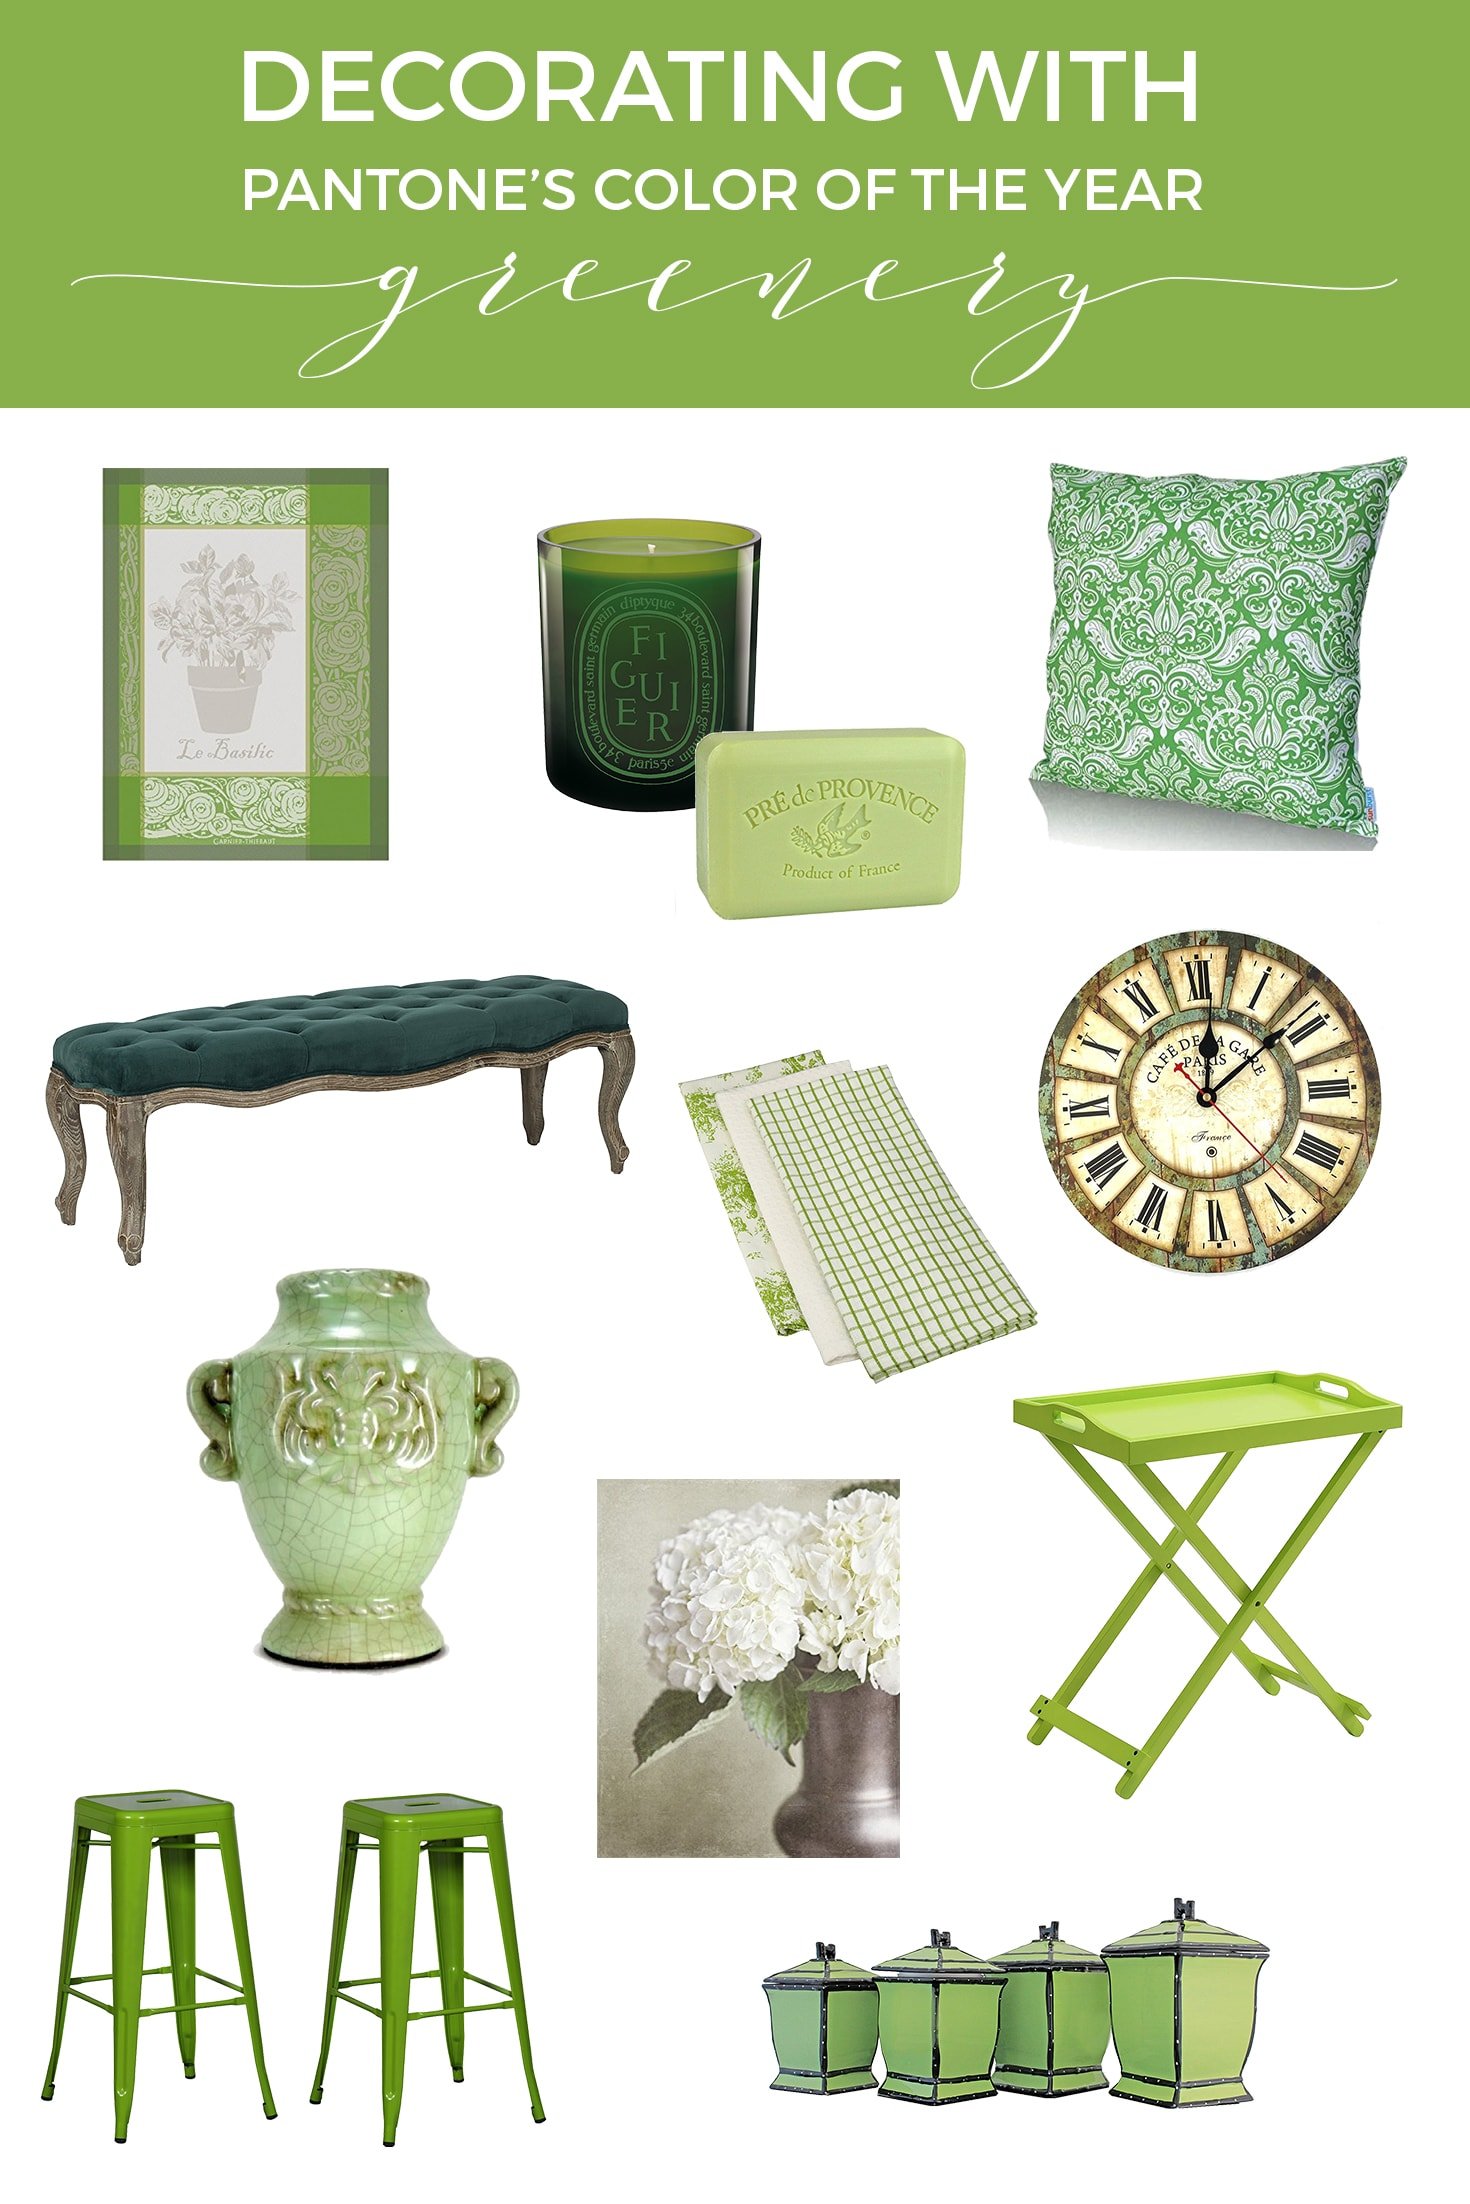 Green Decor | Decorating with Pantone's color of the Year | Greenery | Designthusiasm.com